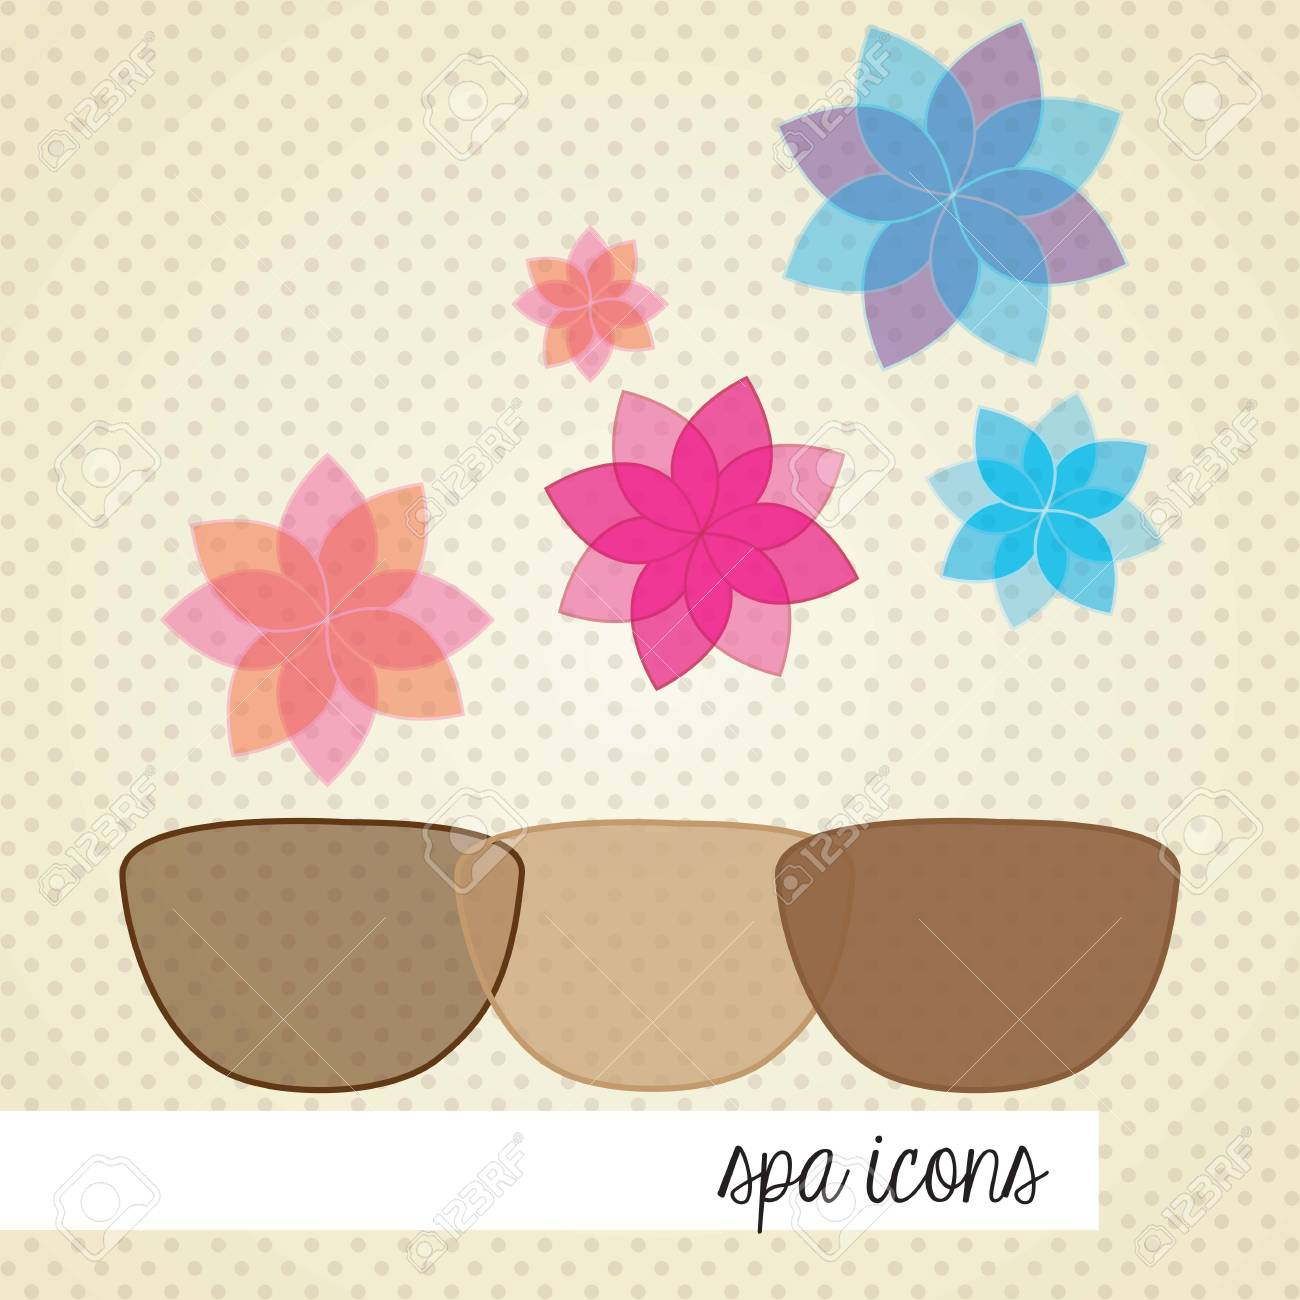 spa icons over light background vector illustration Stock Vector - 17349452